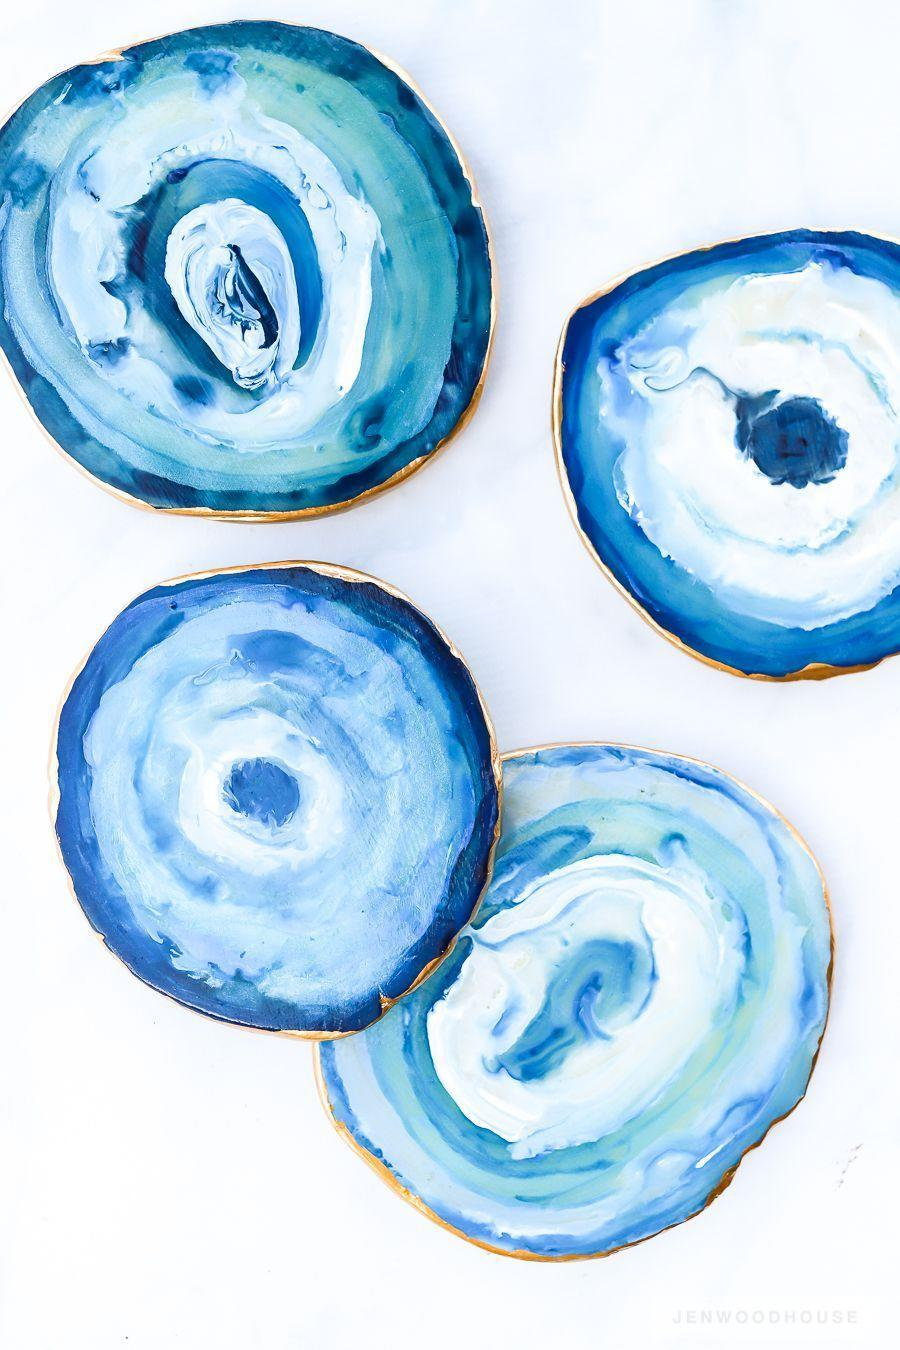 """<p>These coasters couldn't be more gorgeous. It's hard to believe they're made of polymer clay and a bit of acrylic paint—making them a beautiful <em>and</em> inexpensive DIY gift.</p><p><strong>Get the tutorial at <a href=""""https://jenwoodhouse.com/diy-agate-coasters/"""" rel=""""nofollow noopener"""" target=""""_blank"""" data-ylk=""""slk:The House of Wood"""" class=""""link rapid-noclick-resp"""">The House of Wood</a>.</strong></p><p><strong><a class=""""link rapid-noclick-resp"""" href=""""https://www.amazon.com/Liquitex-BASICS-Acrylic-Paint-Primary/dp/B004IXDBZG?tag=syn-yahoo-20&ascsubtag=%5Bartid%7C10050.g.645%5Bsrc%7Cyahoo-us"""" rel=""""nofollow noopener"""" target=""""_blank"""" data-ylk=""""slk:SHOP BLUE PAINT"""">SHOP BLUE PAINT</a></strong></p>"""